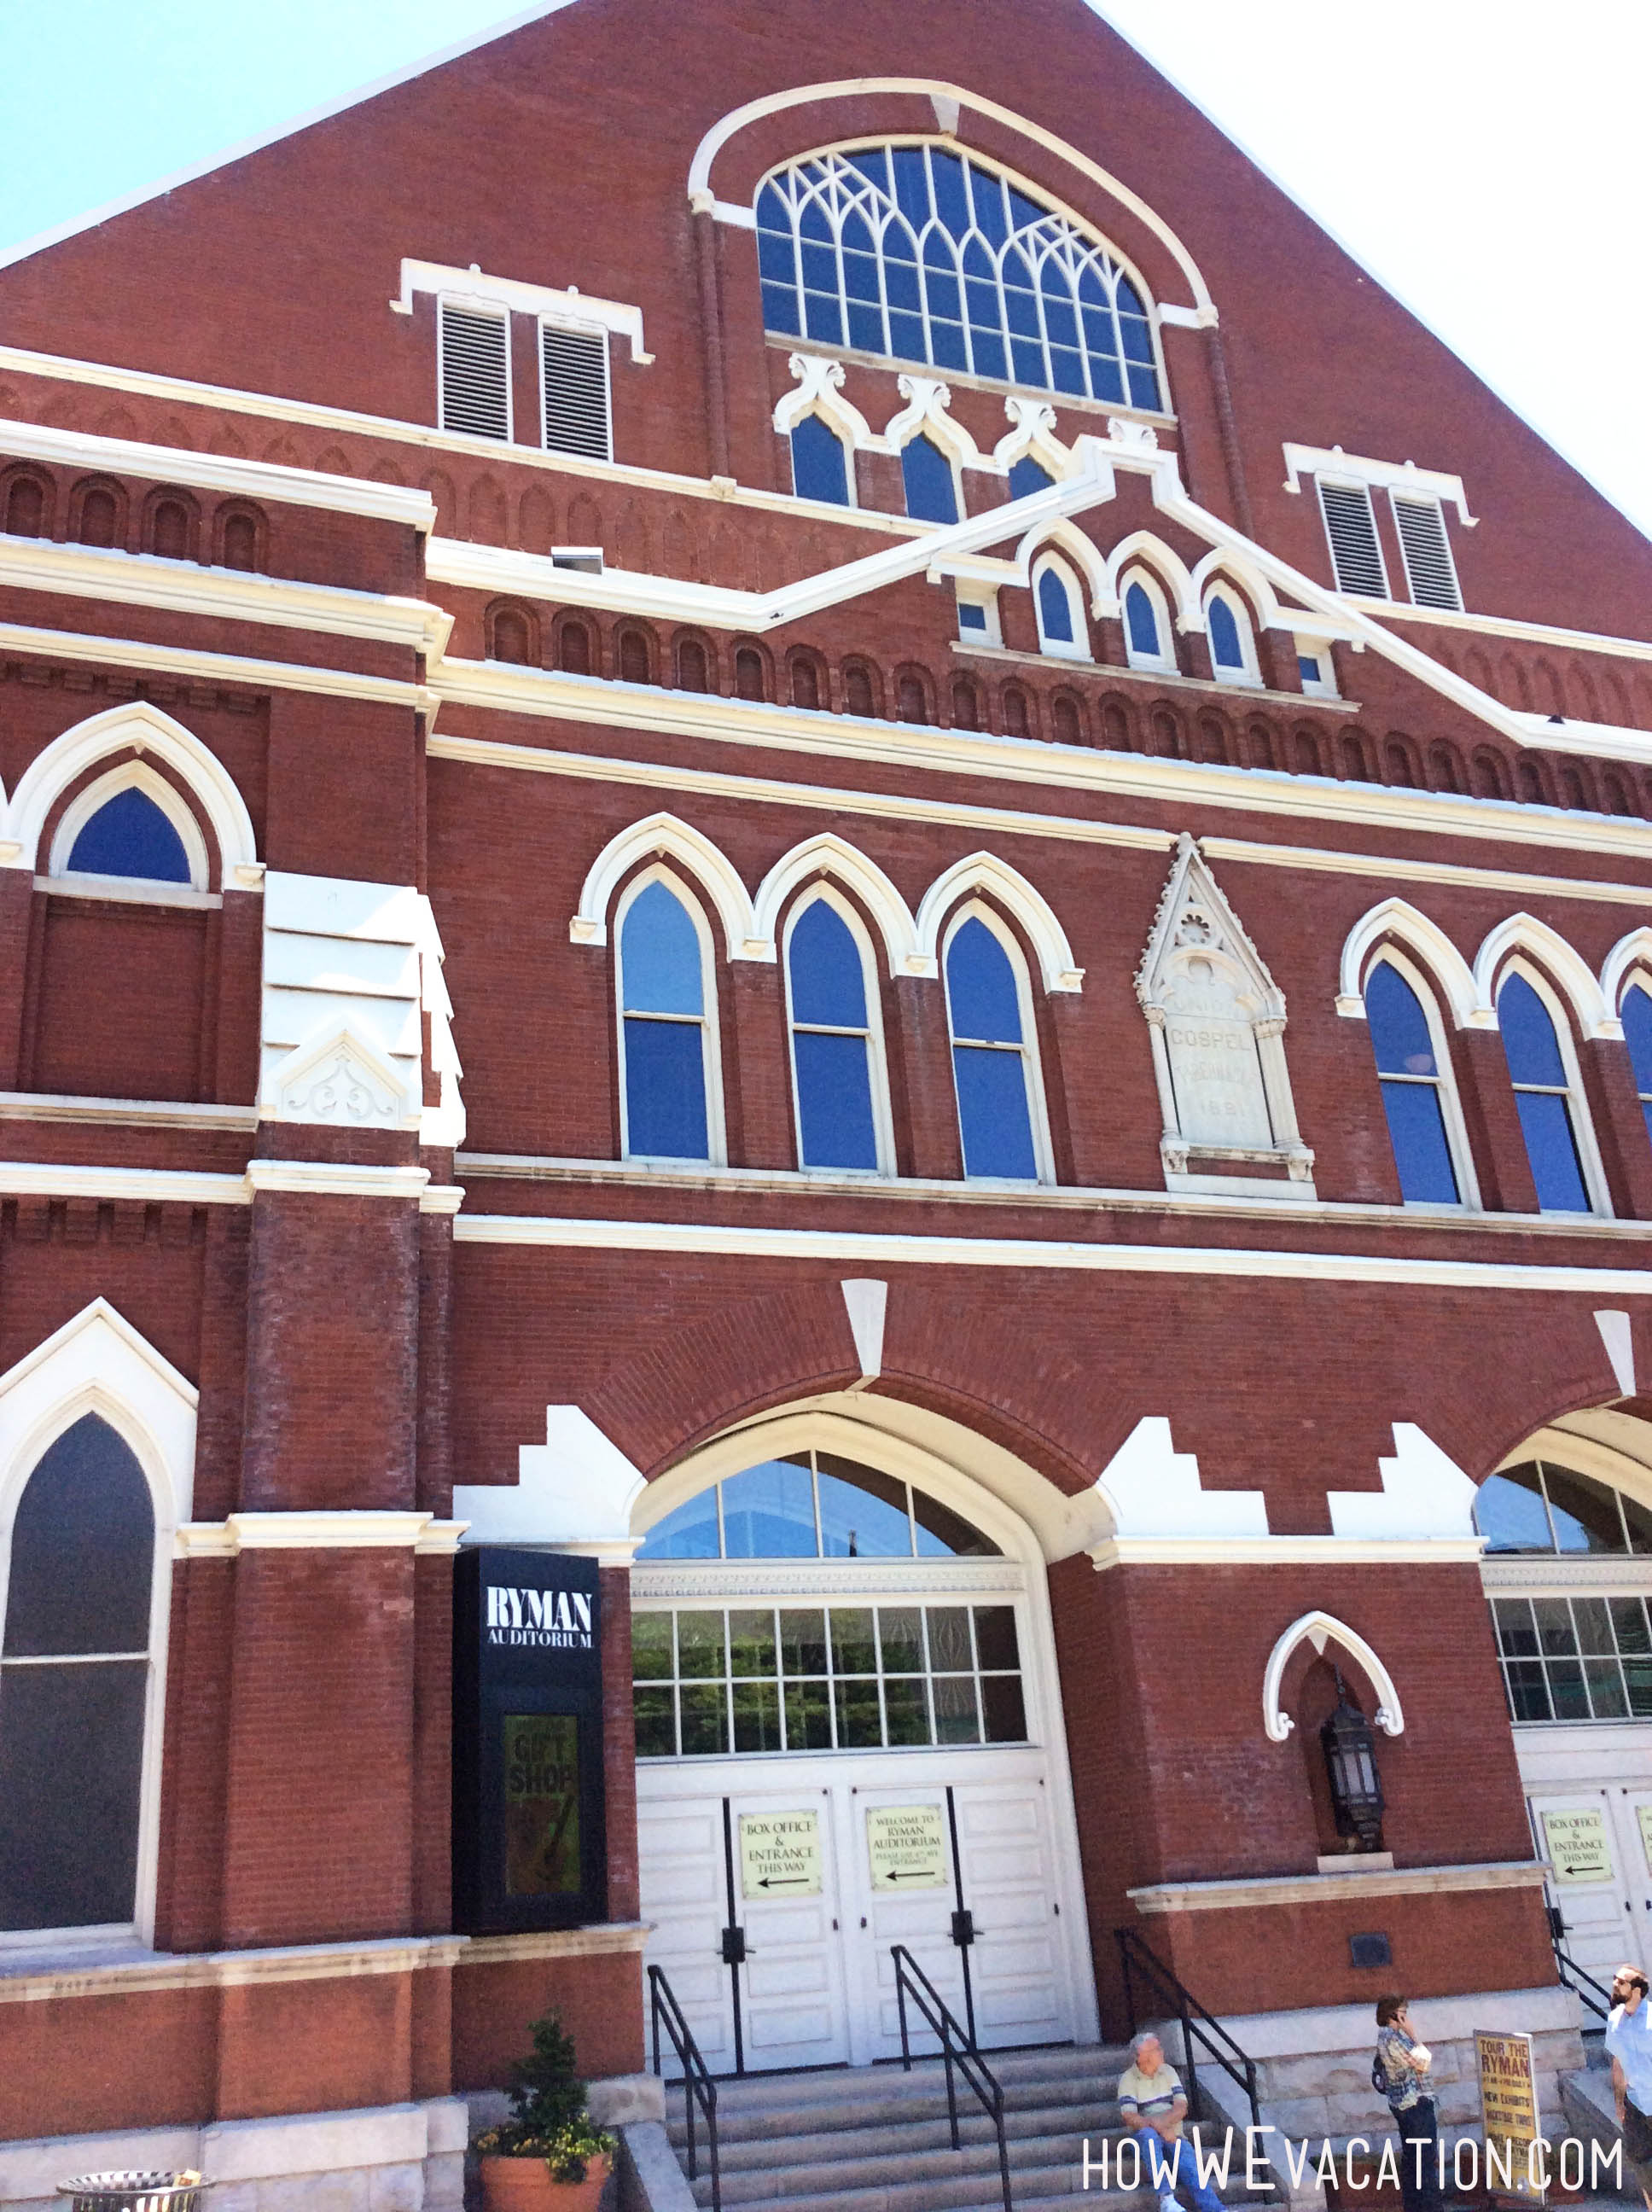 Ryman Auditorium in Nashville, Tennessee